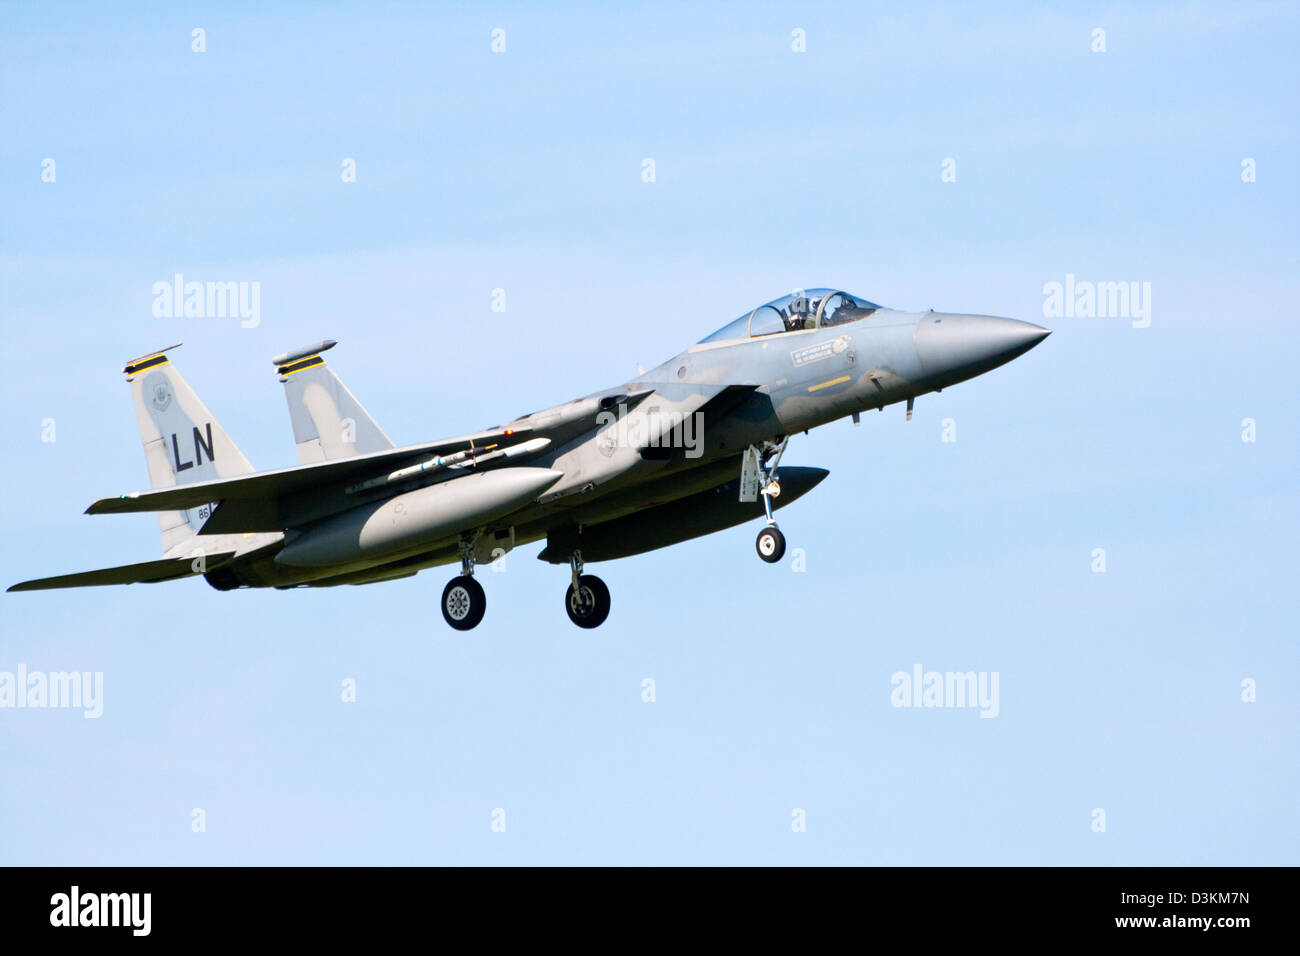 US Air Force F-15 fighter jet - Stock Image